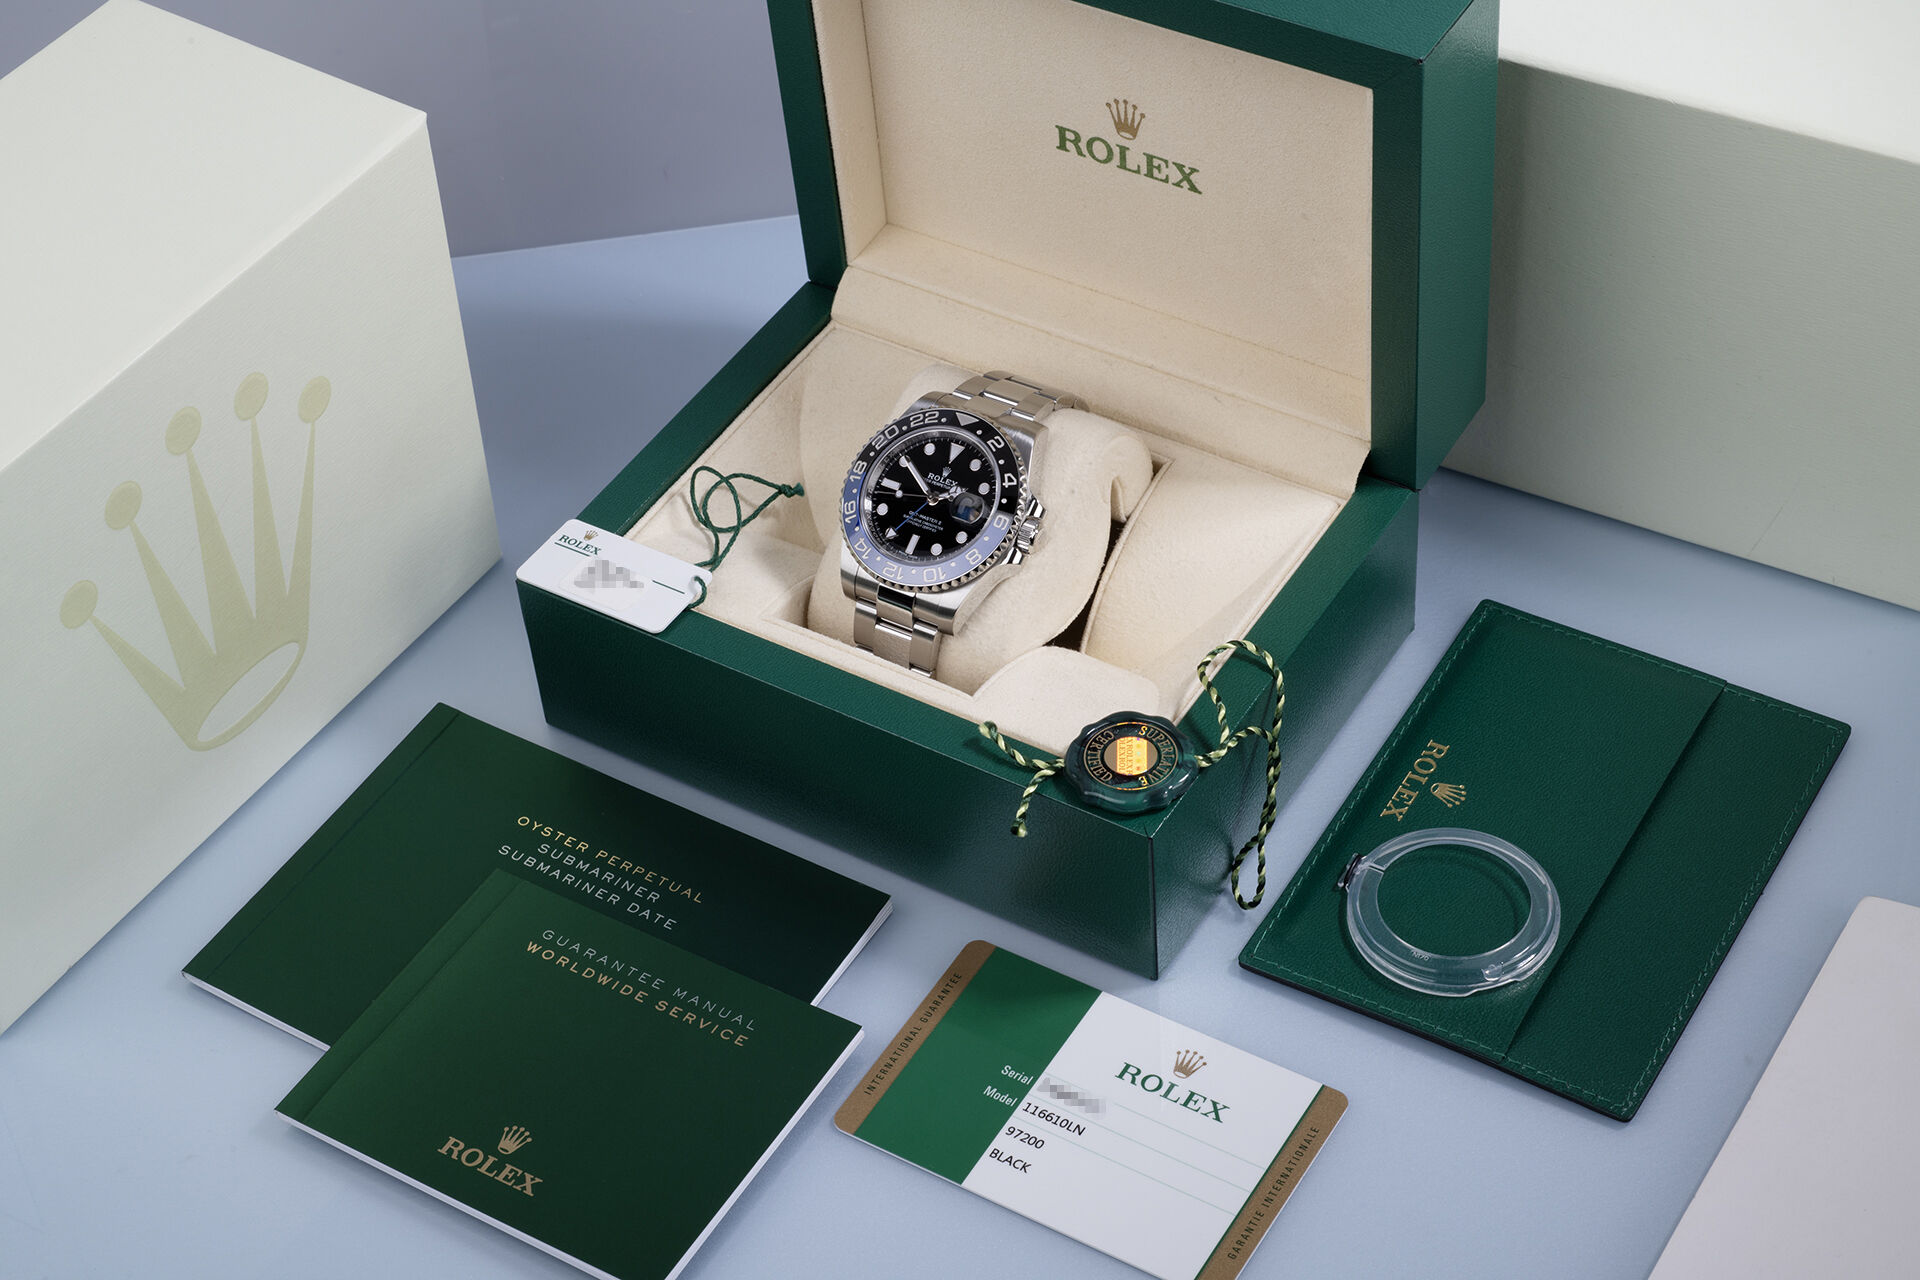 ref 116710BLNR | Under Rolex Warranty  | Rolex GMT-Master II